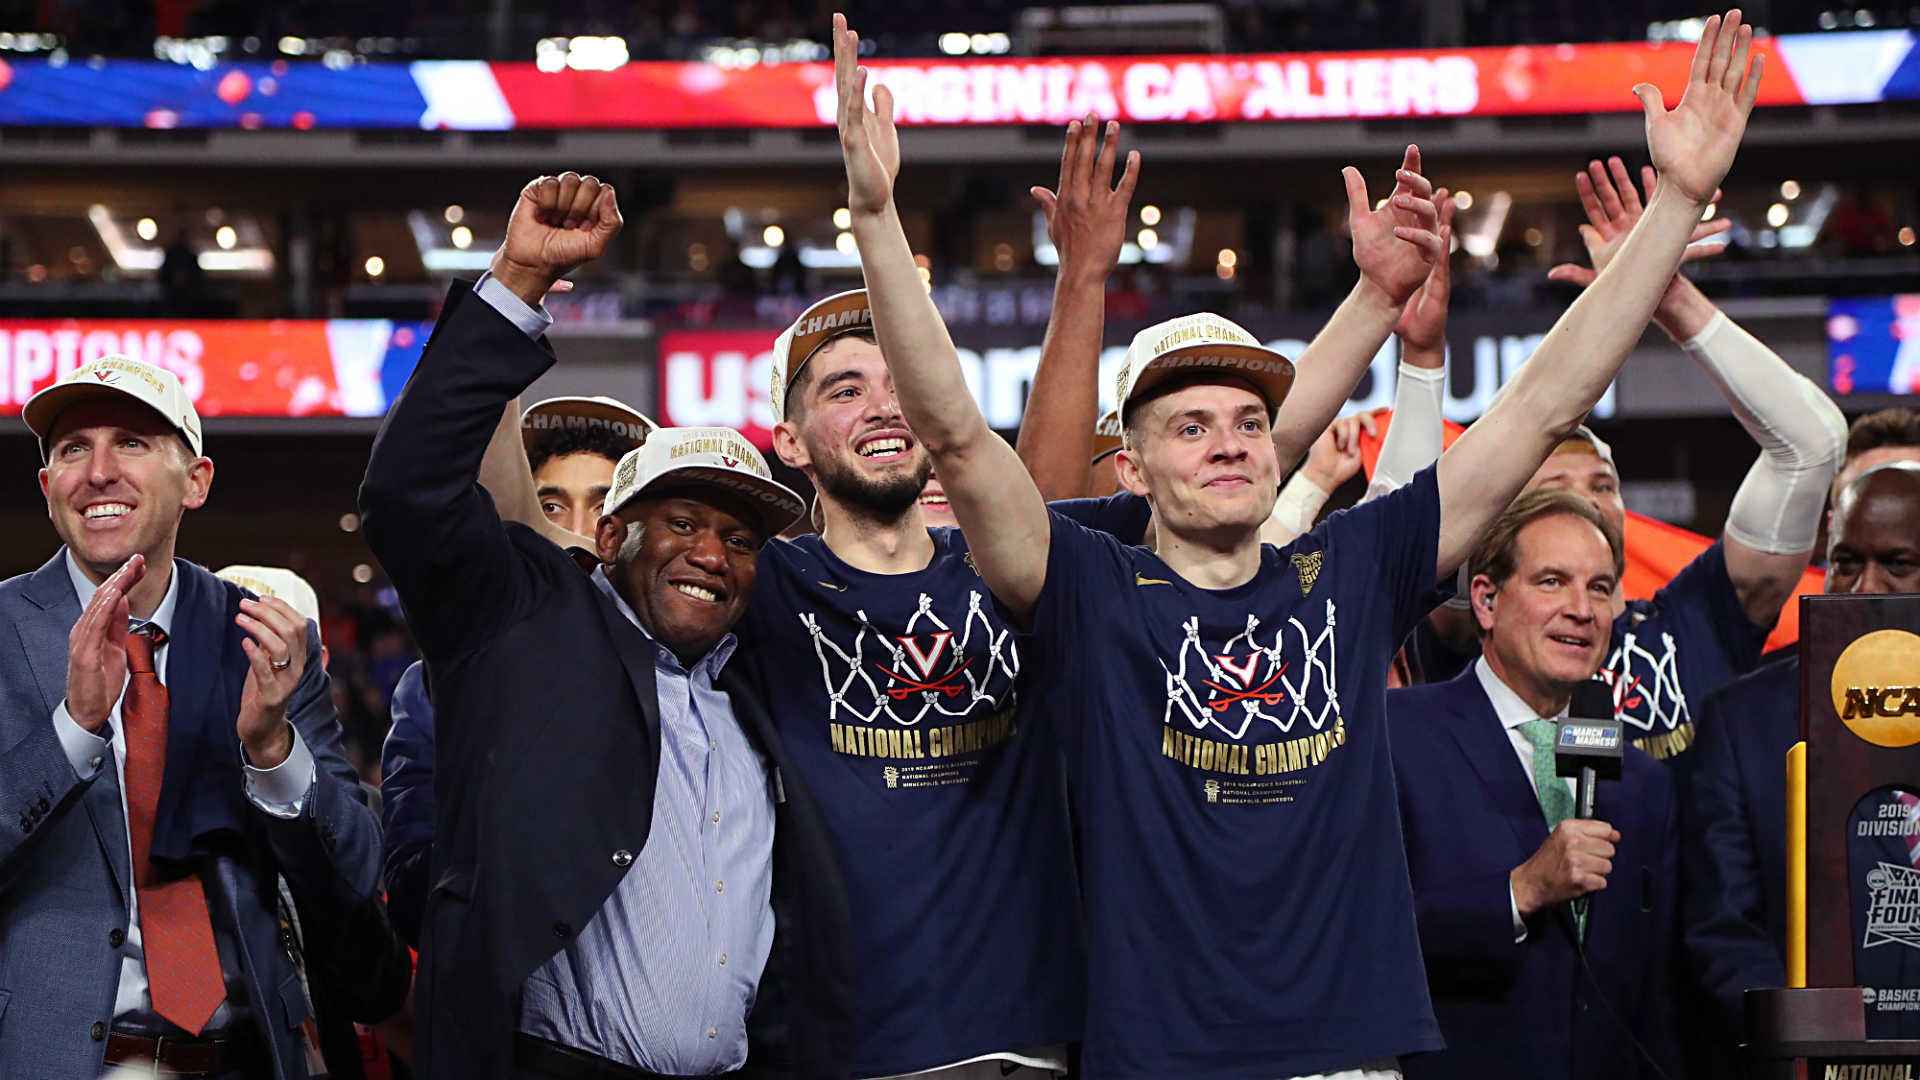 'One Shining Moment' showcases best of 2019 NCAA ...